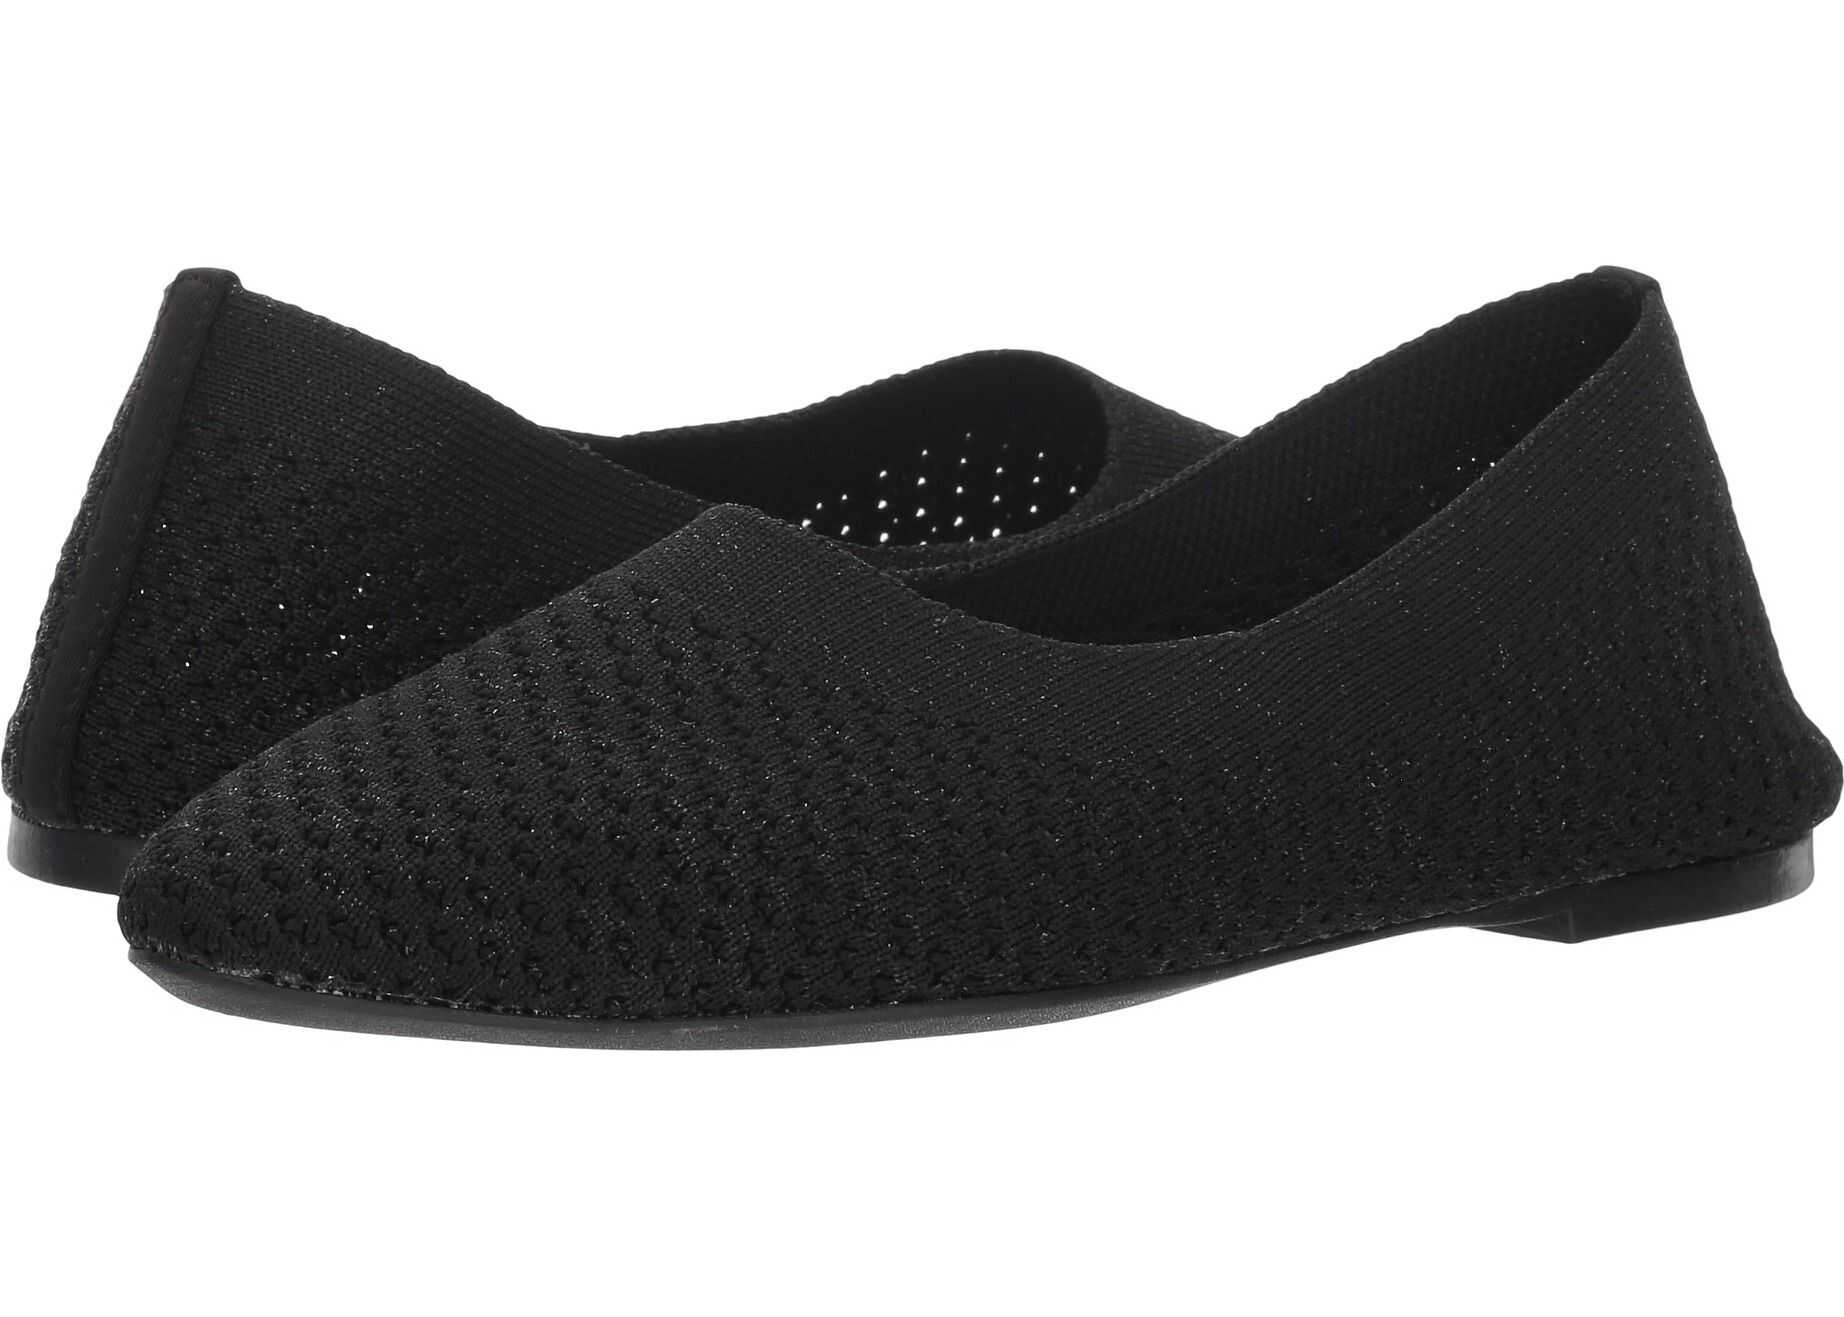 SKECHERS Cleo - Star Daze Black